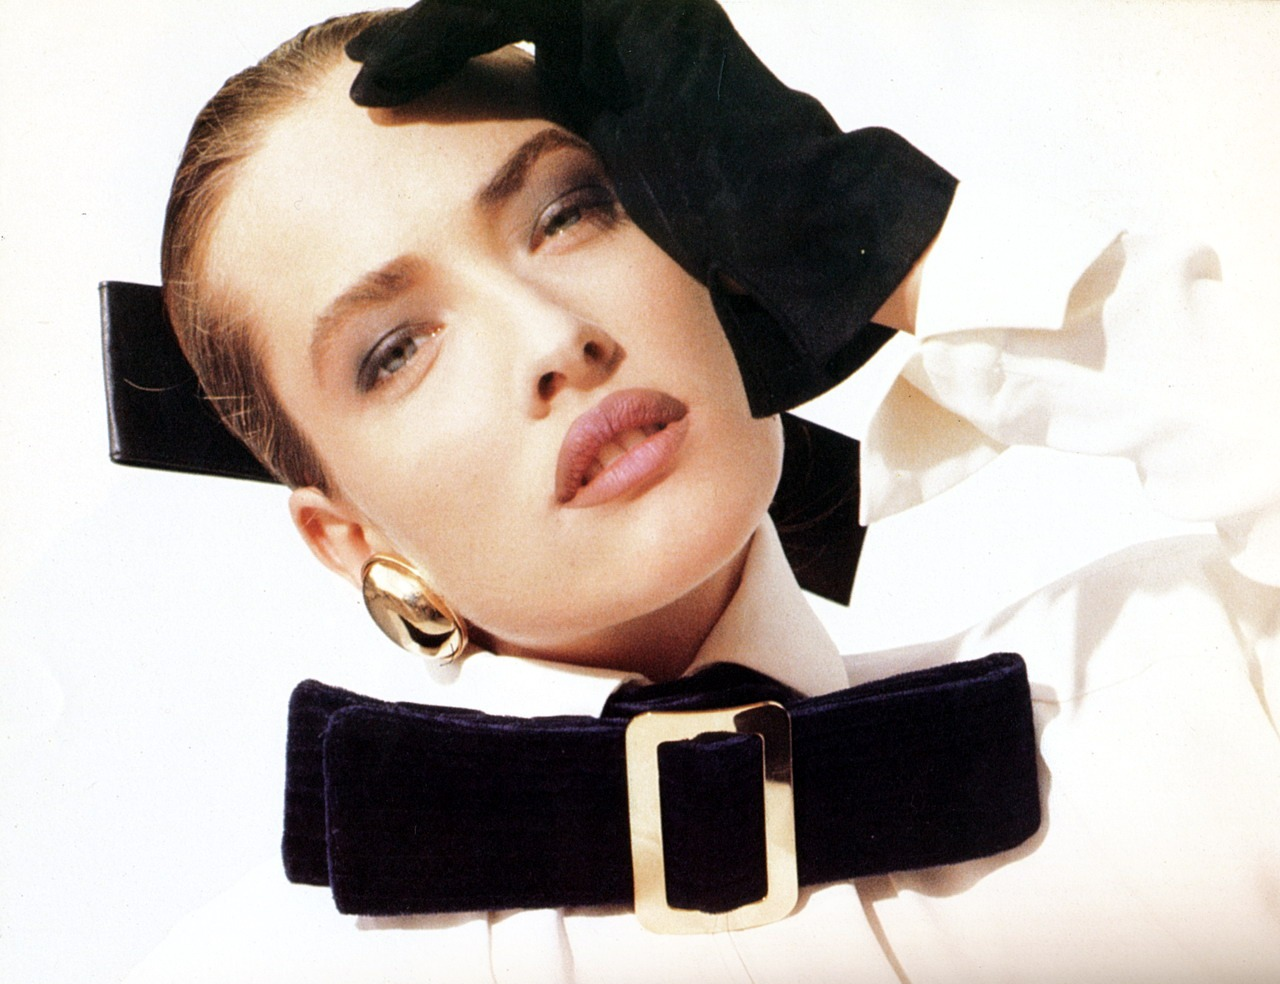 Gianfranco Ferre FW 87 Photographed by Herb Ritts